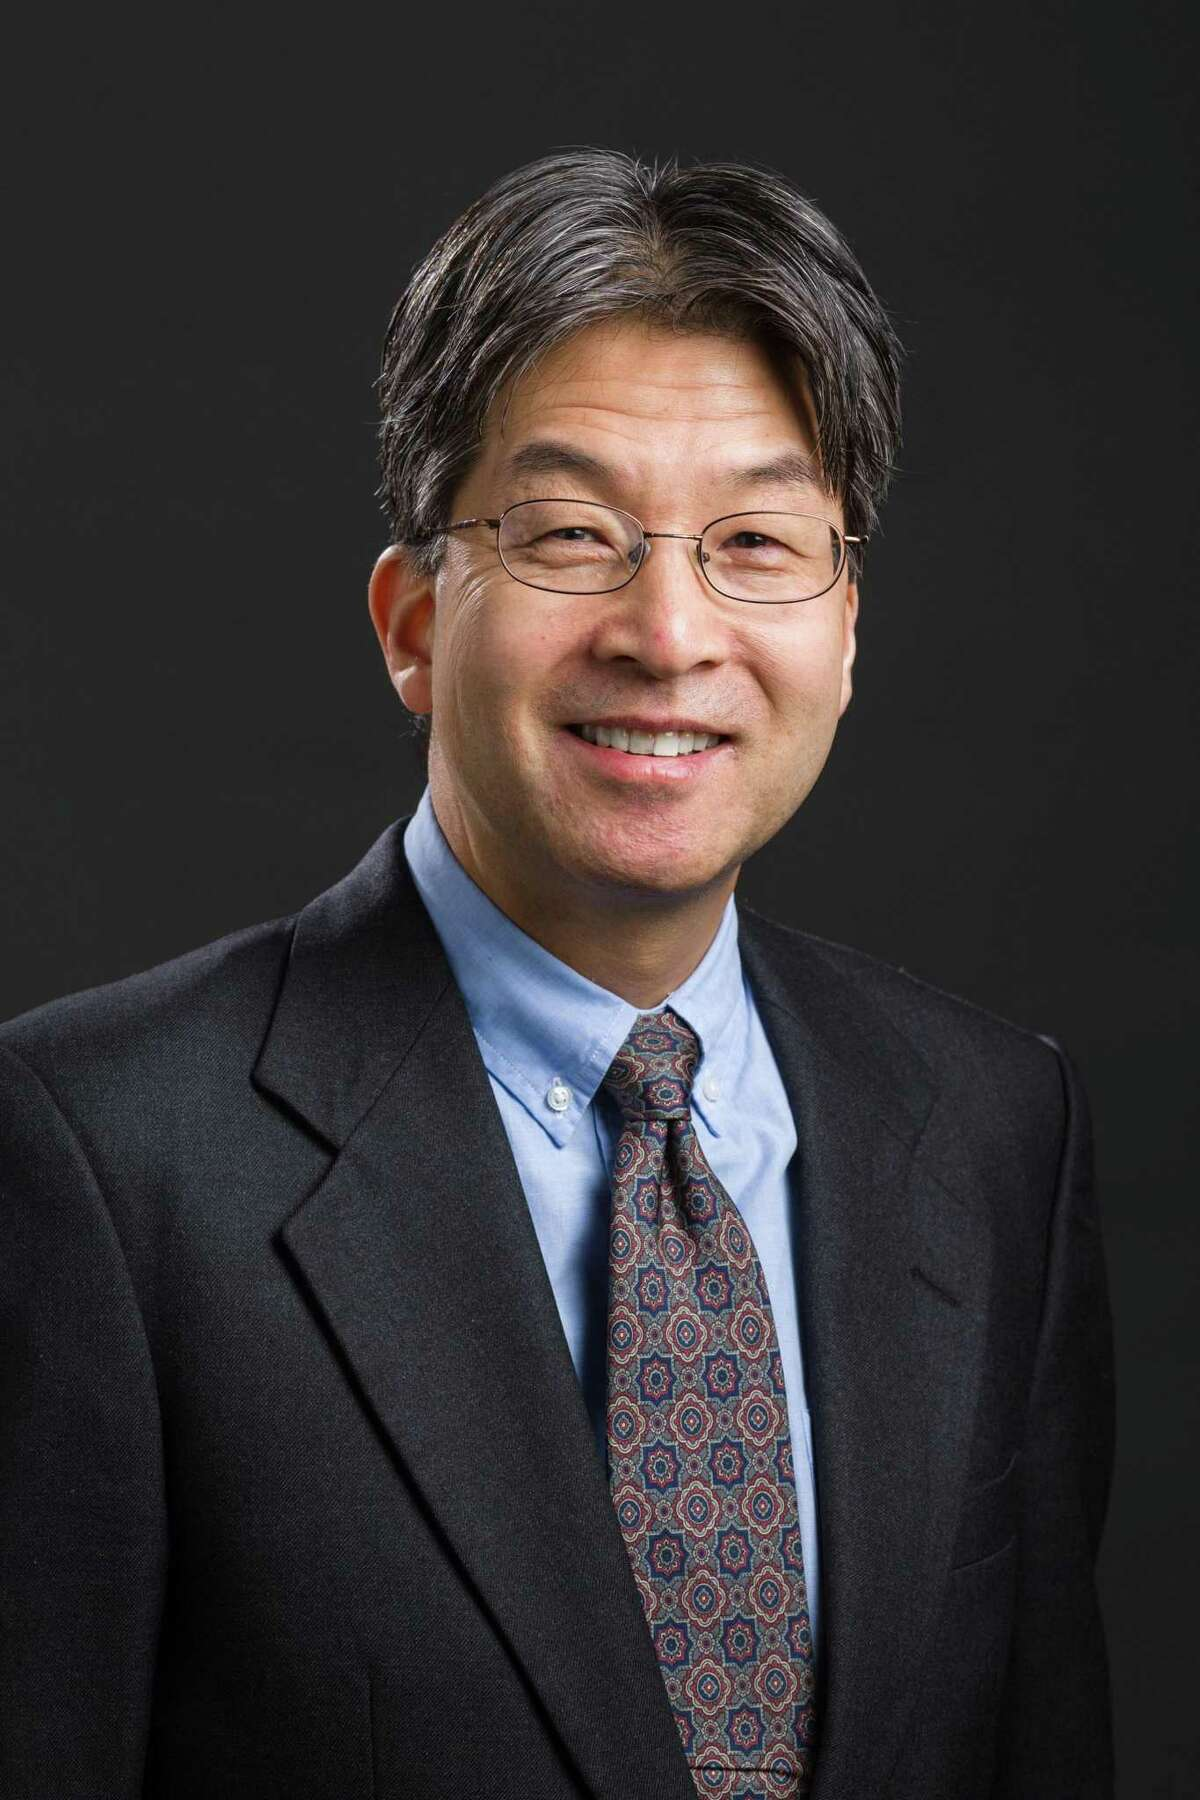 Dr. Albert Ko, a professor of epidemiology and infectious diseases at the Yale School of Public Health and Yale School of Medicine.